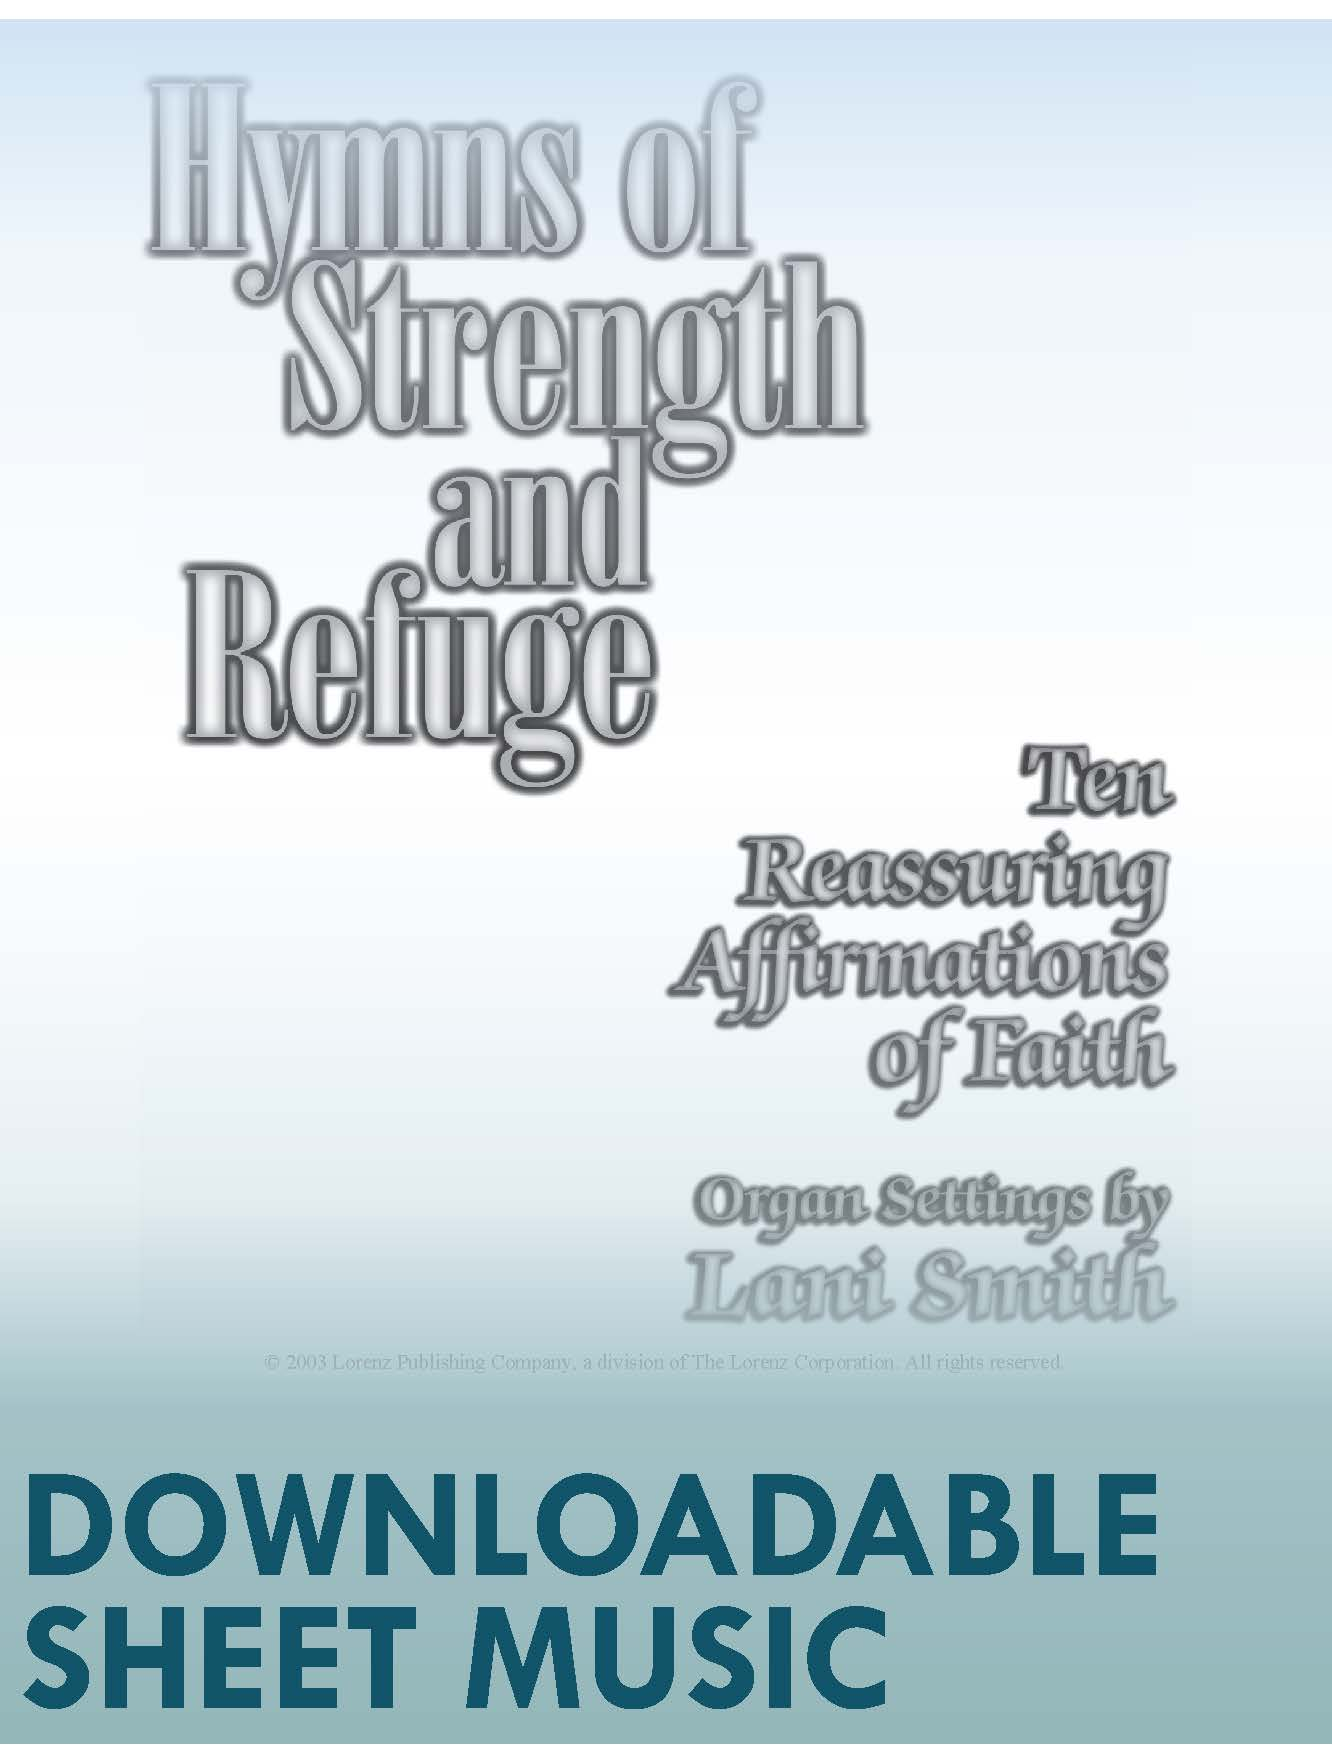 Hymns of Strength and Refuge - Digital Download